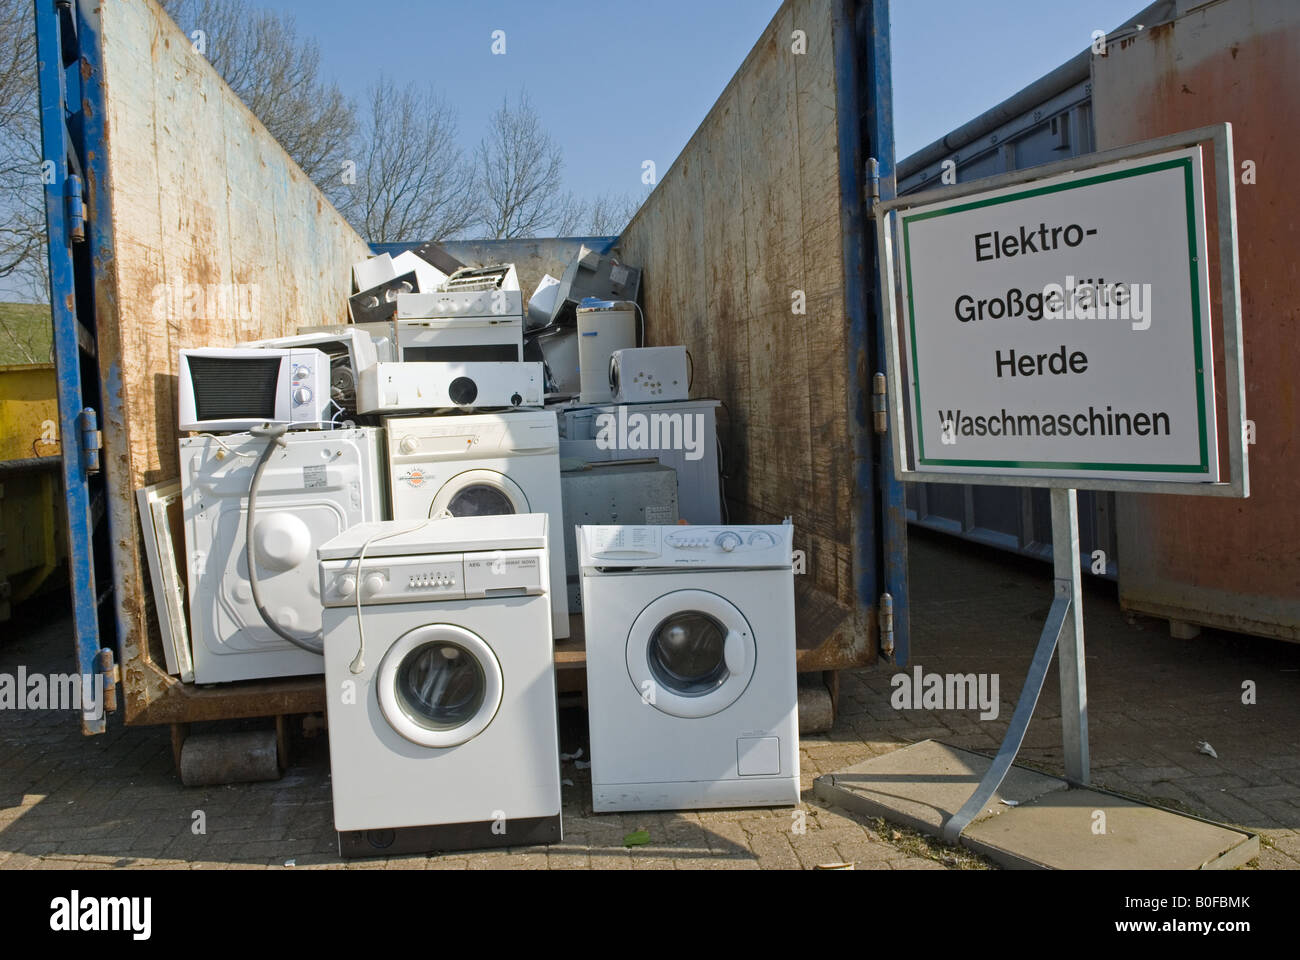 Oldenburg Shopping Center Disused Kitchen Appliances At A Recycling Centre